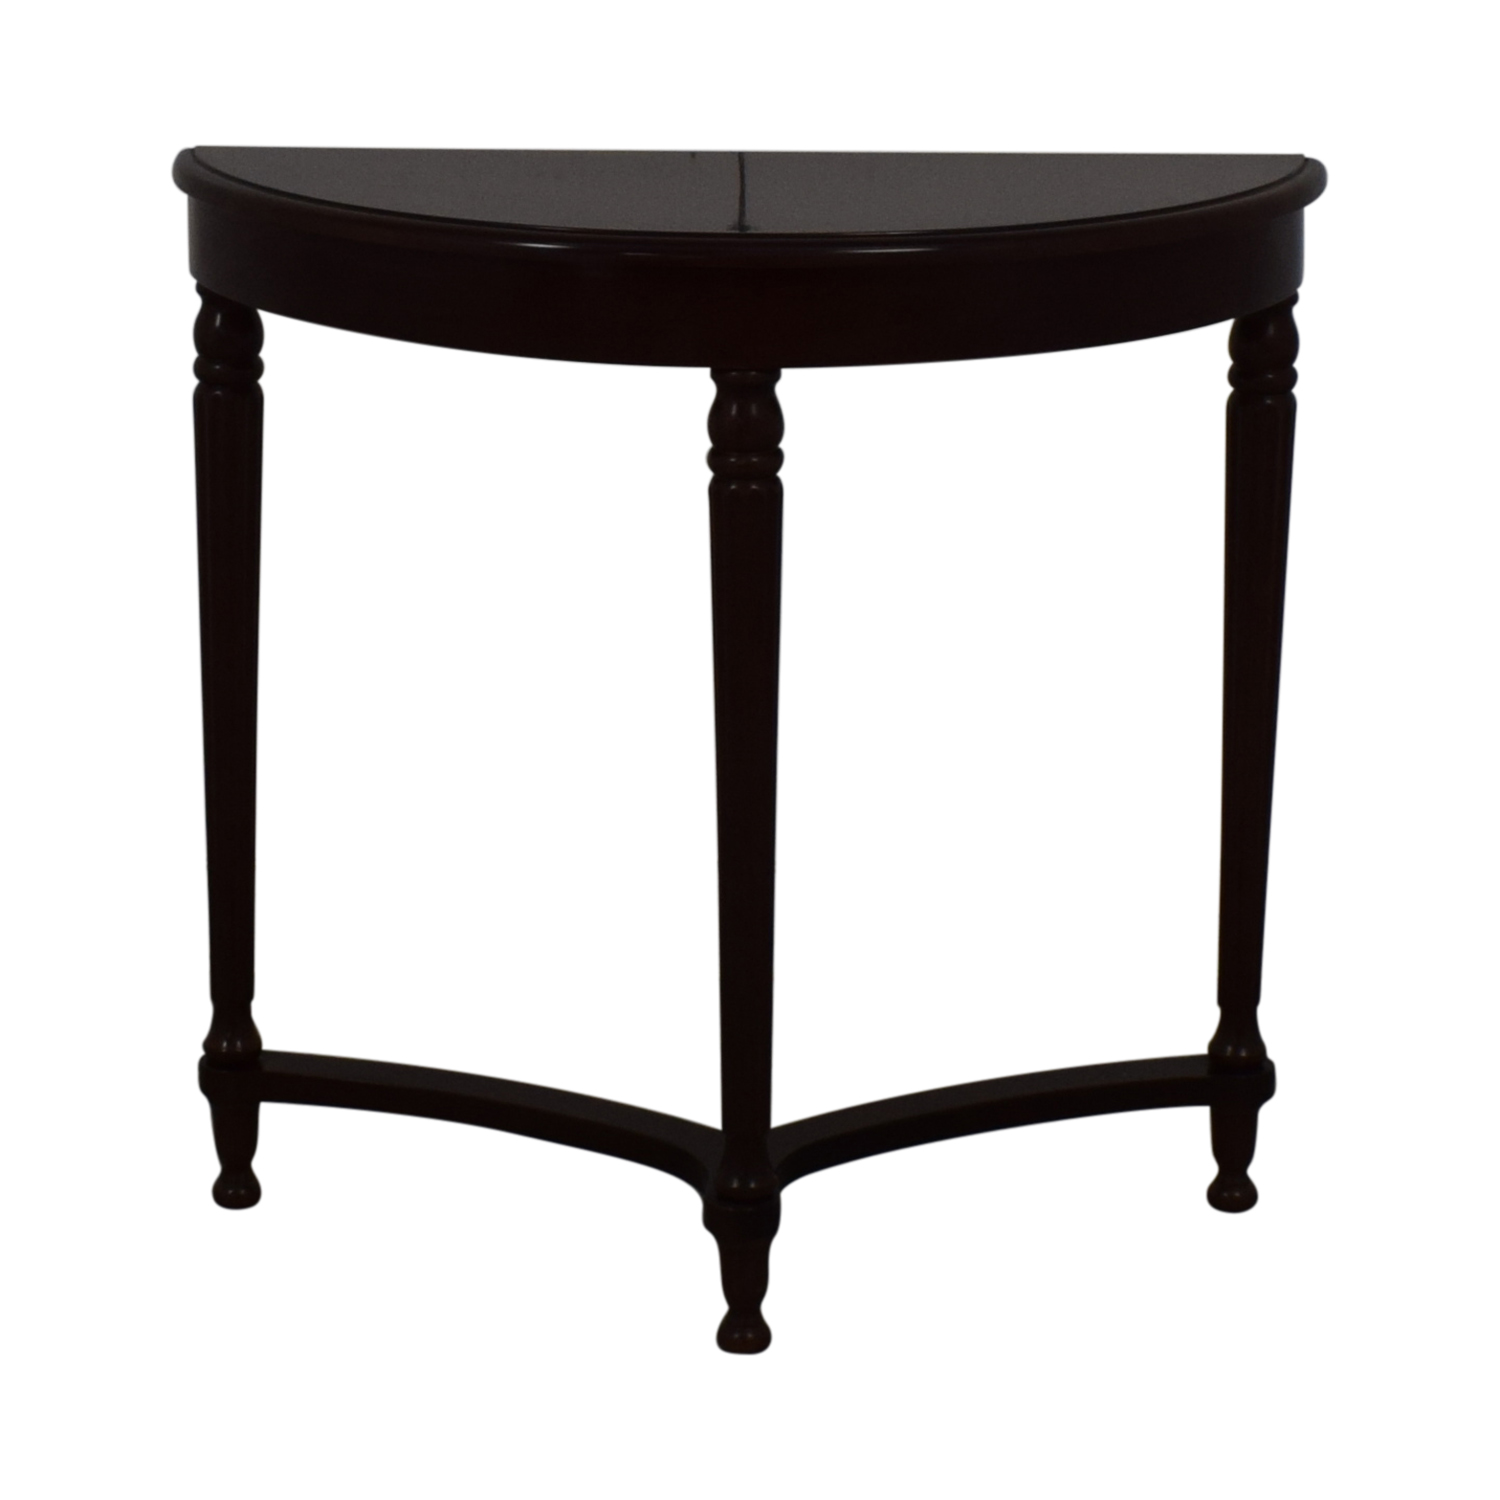 Bombay Company Bombay Company Crescent Console Table used